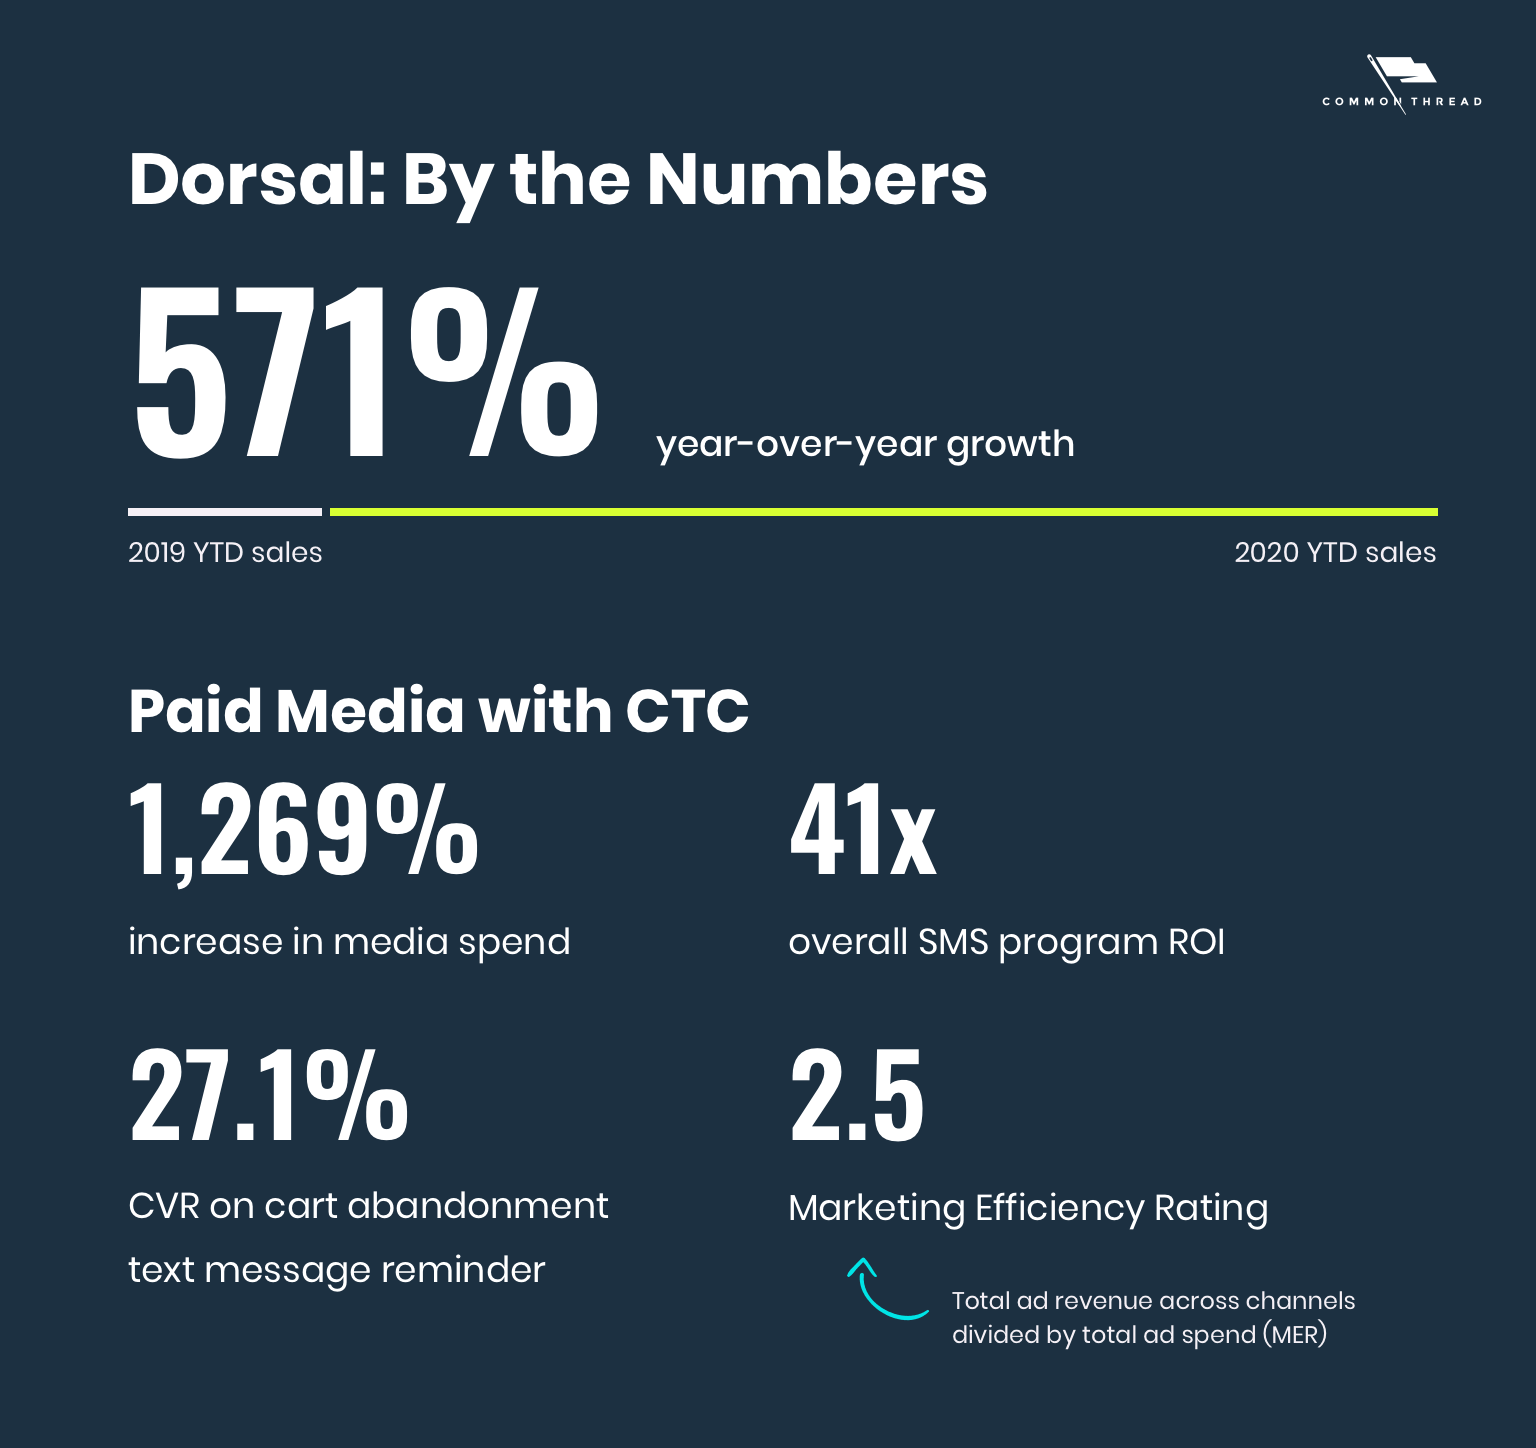 Dorsal: By the numbers